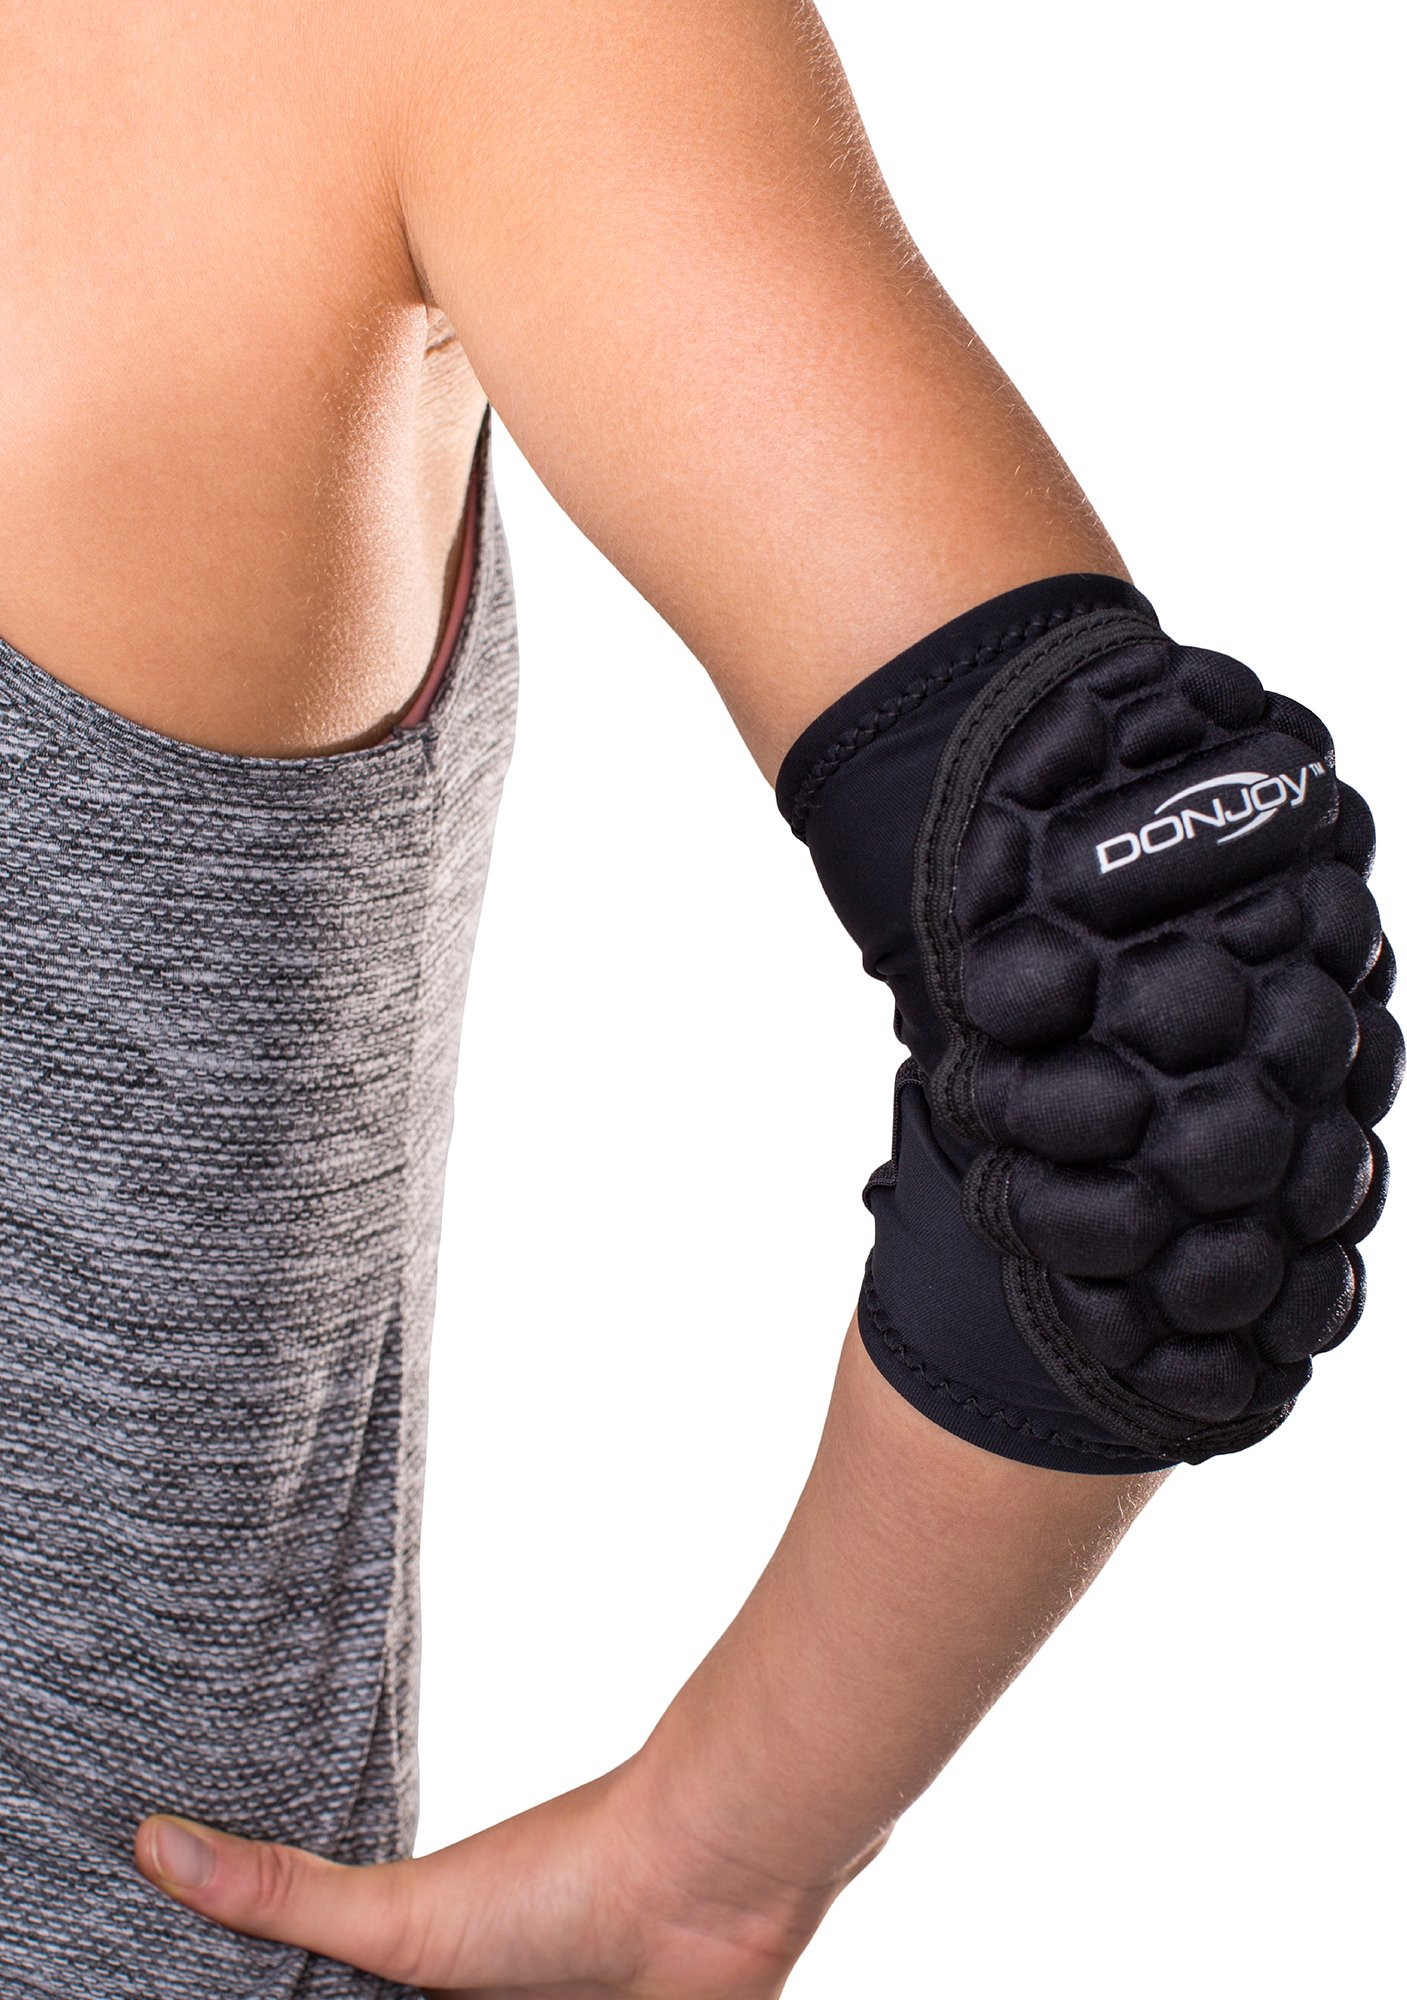 DonJoy Spider Elbow Pad Sleeve, Small by DonJoy